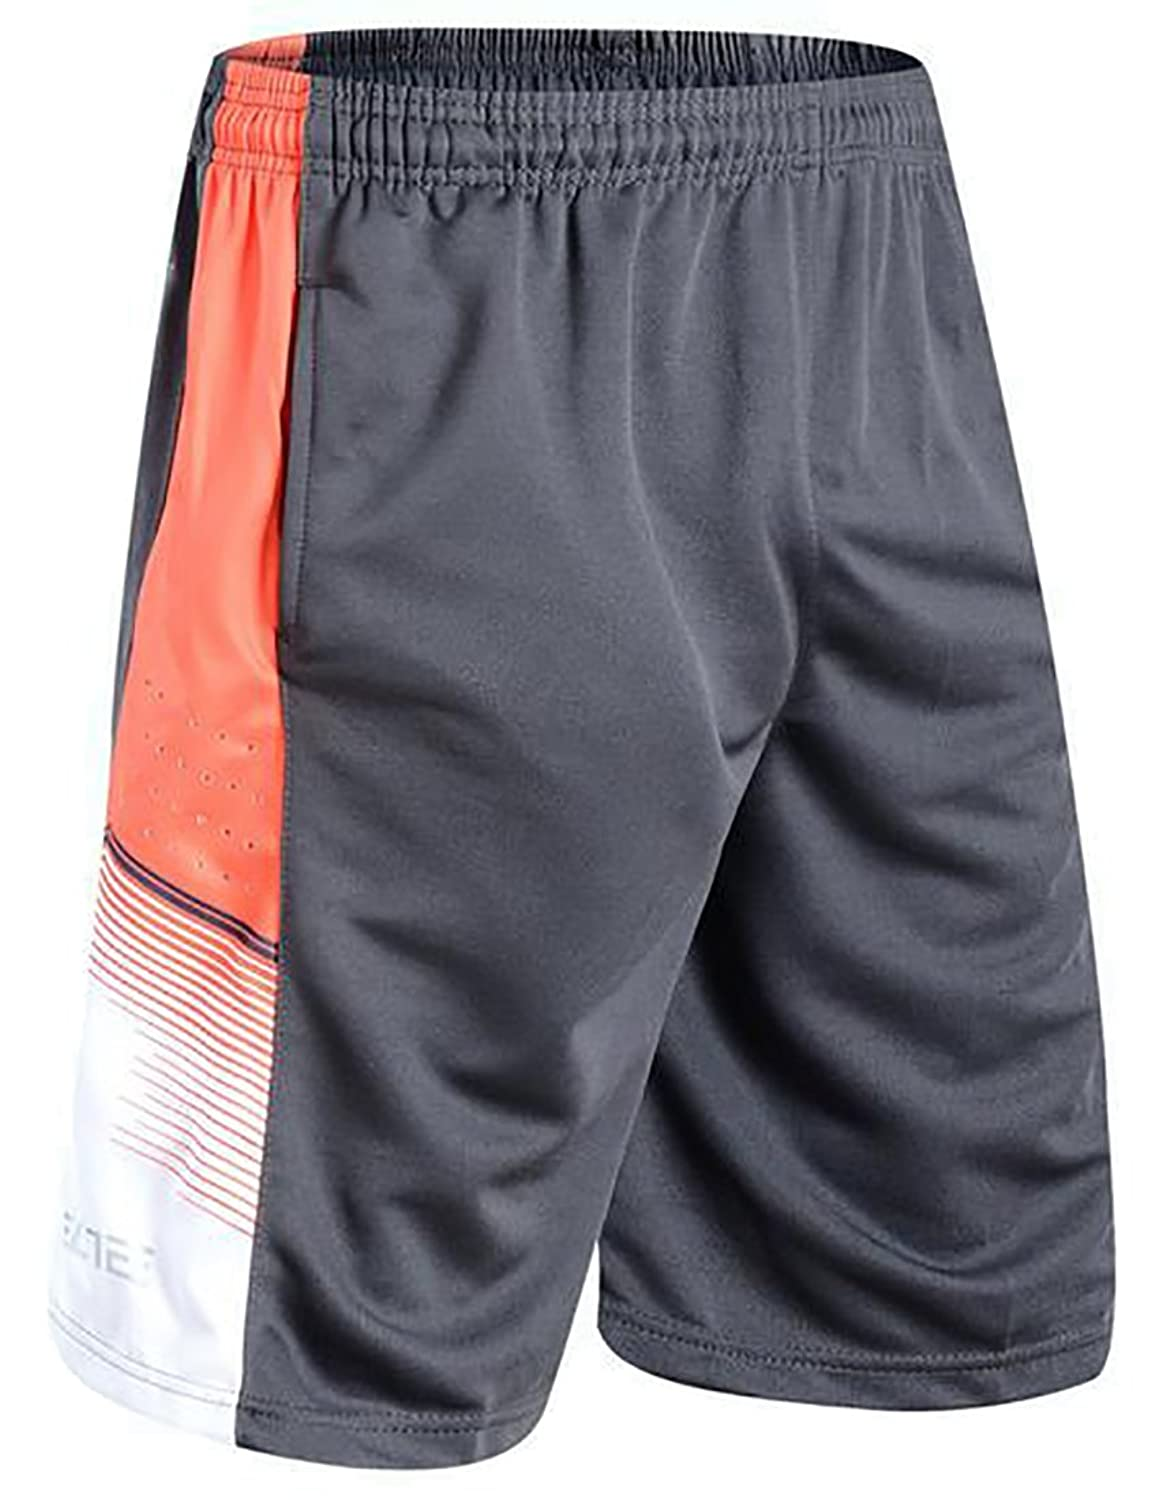 Mens basketball shorts on sale free shipping - Arrive Guide Mens Printed Loose Elastic Waist Quick Dry Basketball Shorts Free Shipping